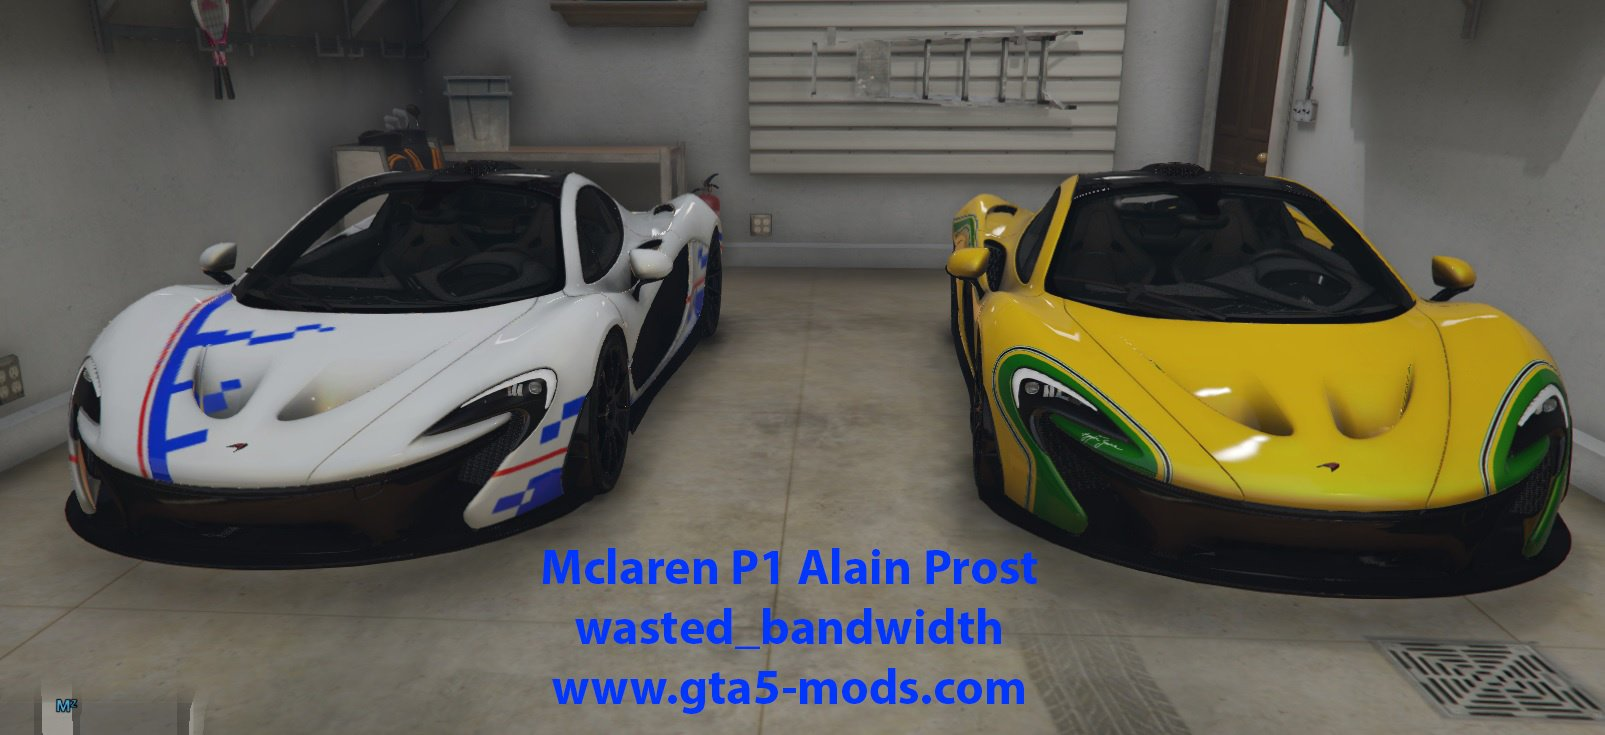 https://img.gta5-mods.com/q95/images/mclaren-p1-alain-prost-skin-1-0/8d1ca6-final_both.jpg